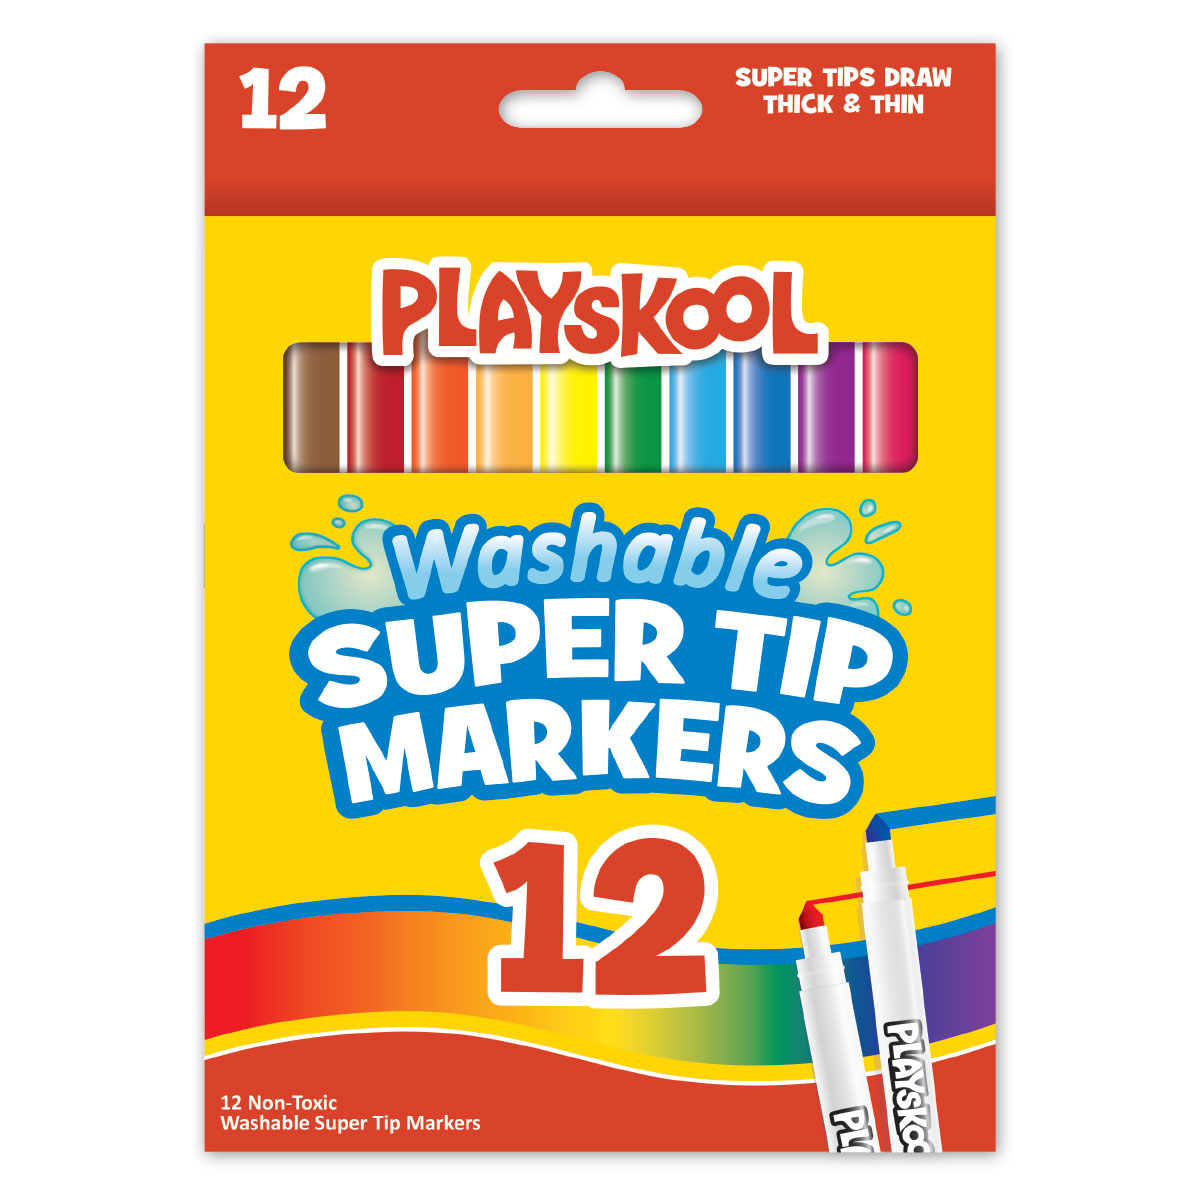 8 Washable Markers 36 Non-Toxic Crayons Leap Year Publishing Playskool Washable Markers and Crayons Art Set